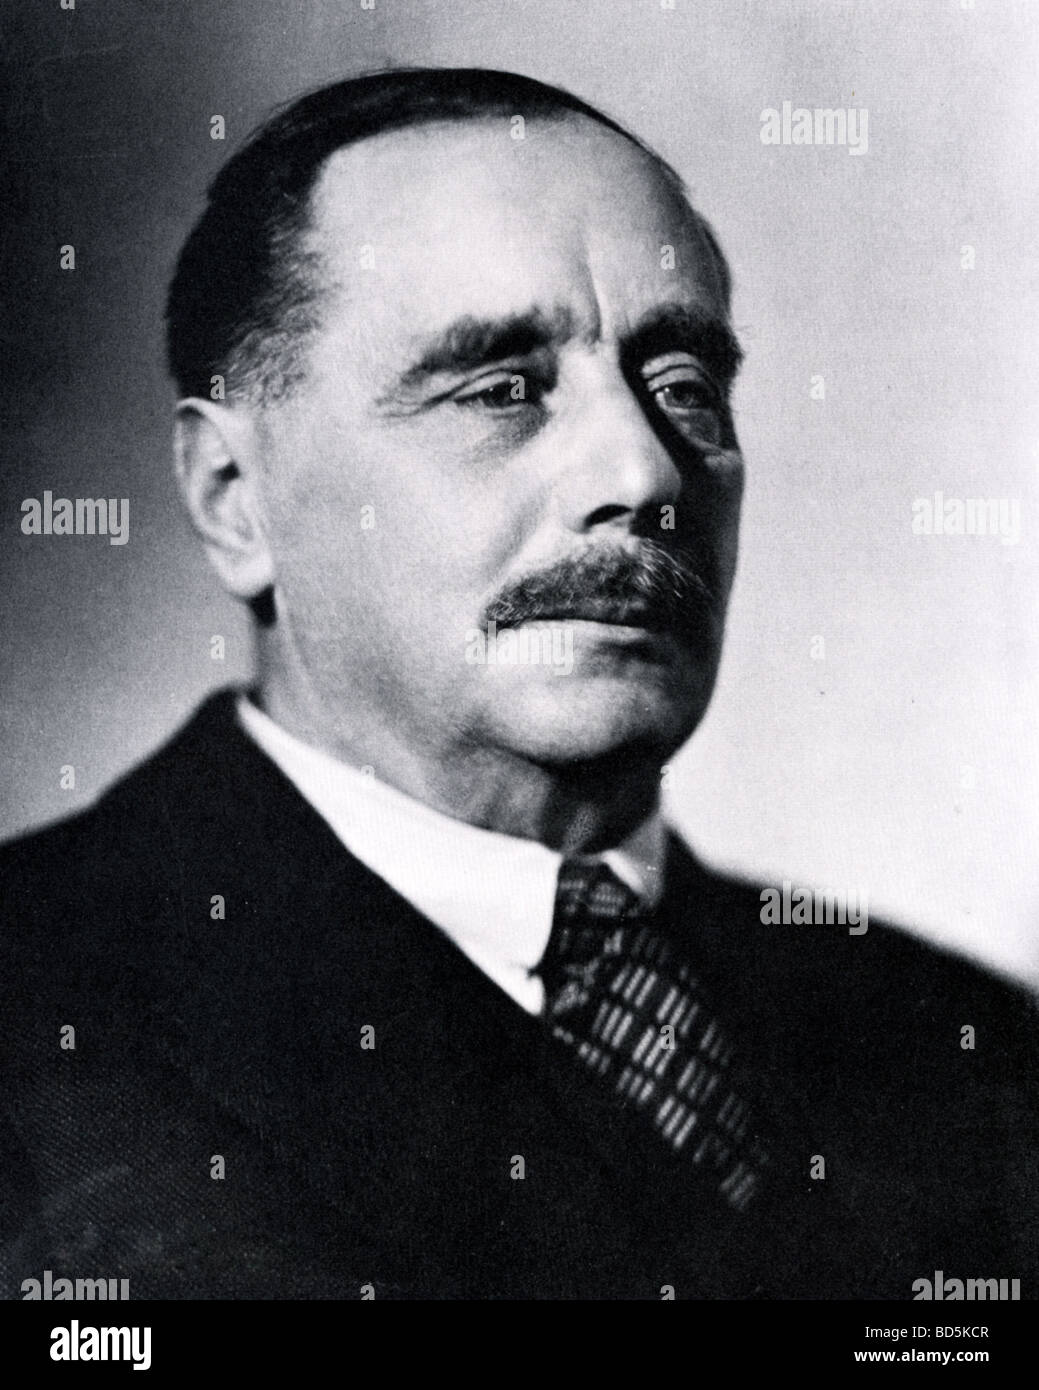 H G WELLS British sci fi writer and historian photographed in 1934 - Stock Image